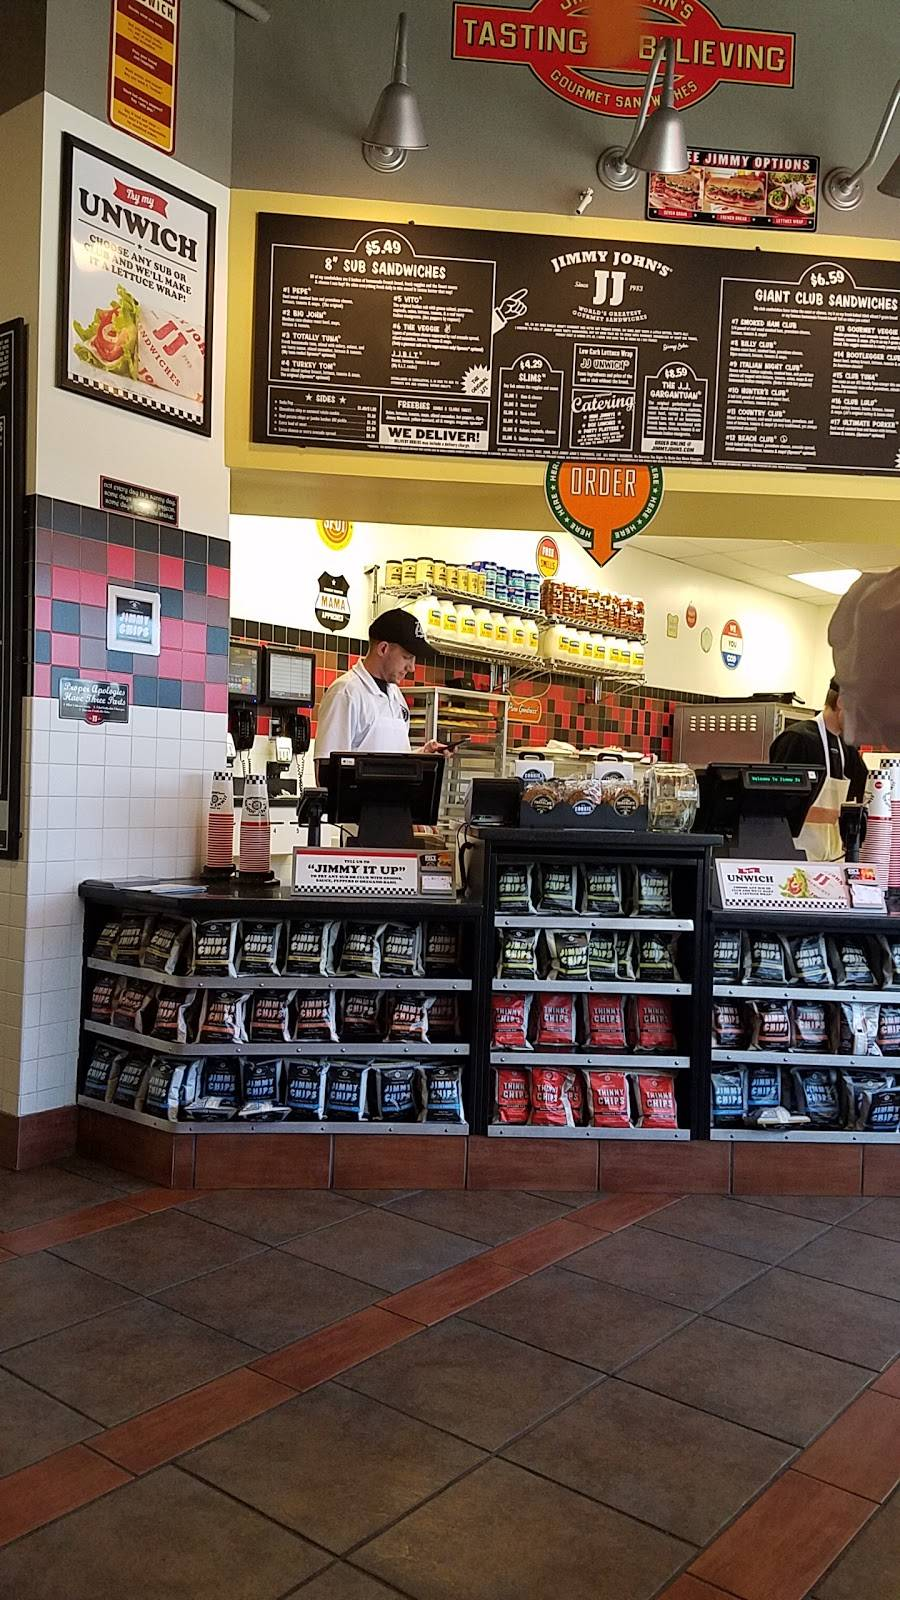 Jimmy Johns | meal delivery | 2337 S Shields St, Fort Collins, CO 80526, USA | 9704937500 OR +1 970-493-7500